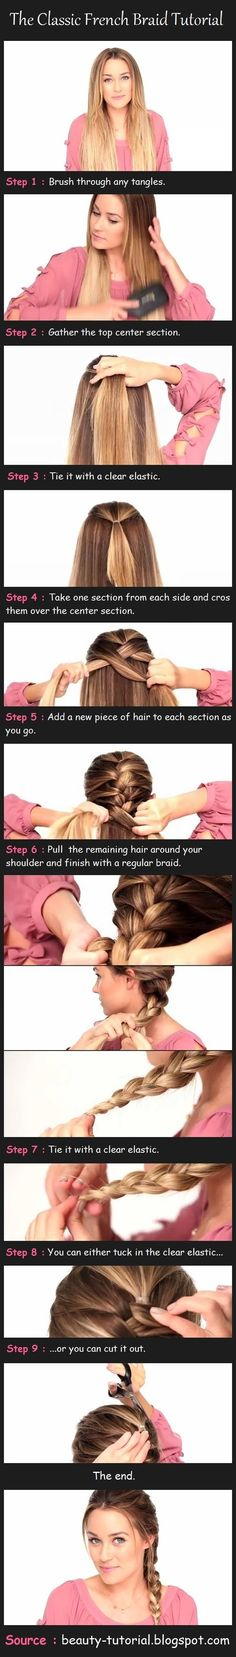 French Braiding for Dummies...  I wear my hair this way at least once or twice a week,  The when I take it out the next day I have awesome curls that last a day or two.